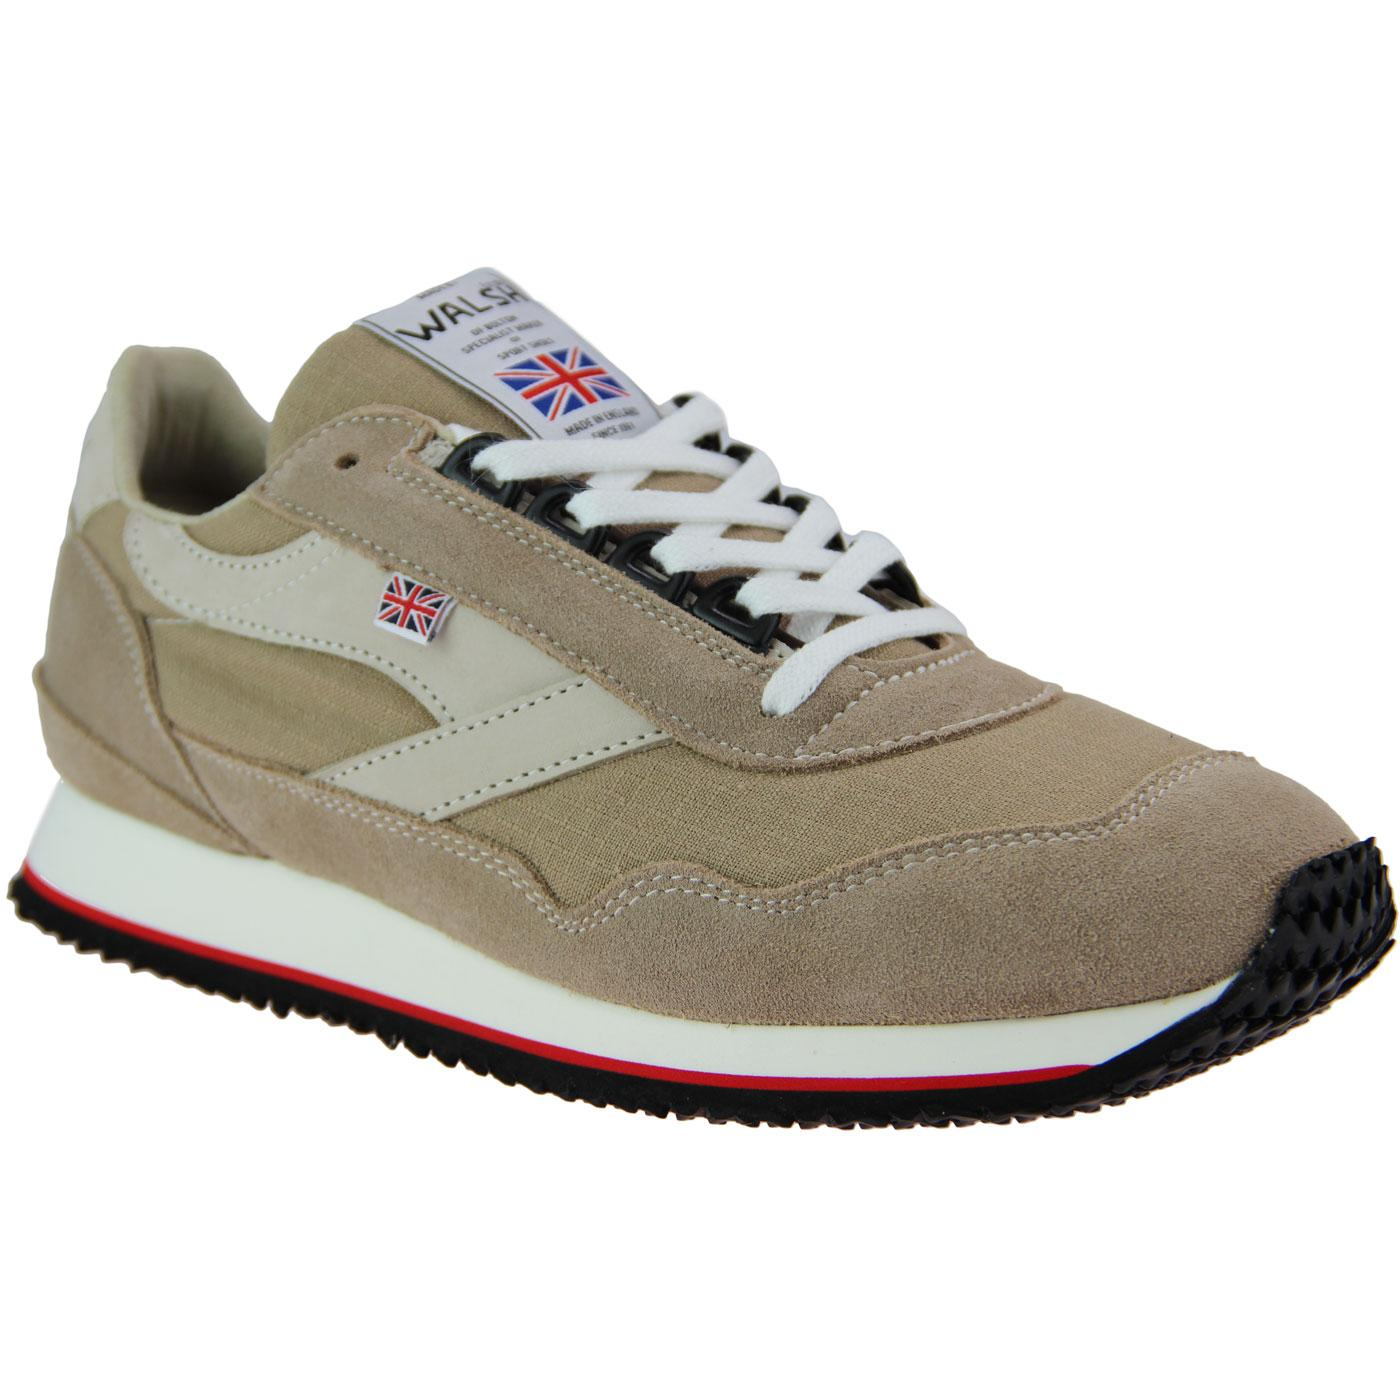 Ensign WALSH Made in England Retro Trainers DESERT